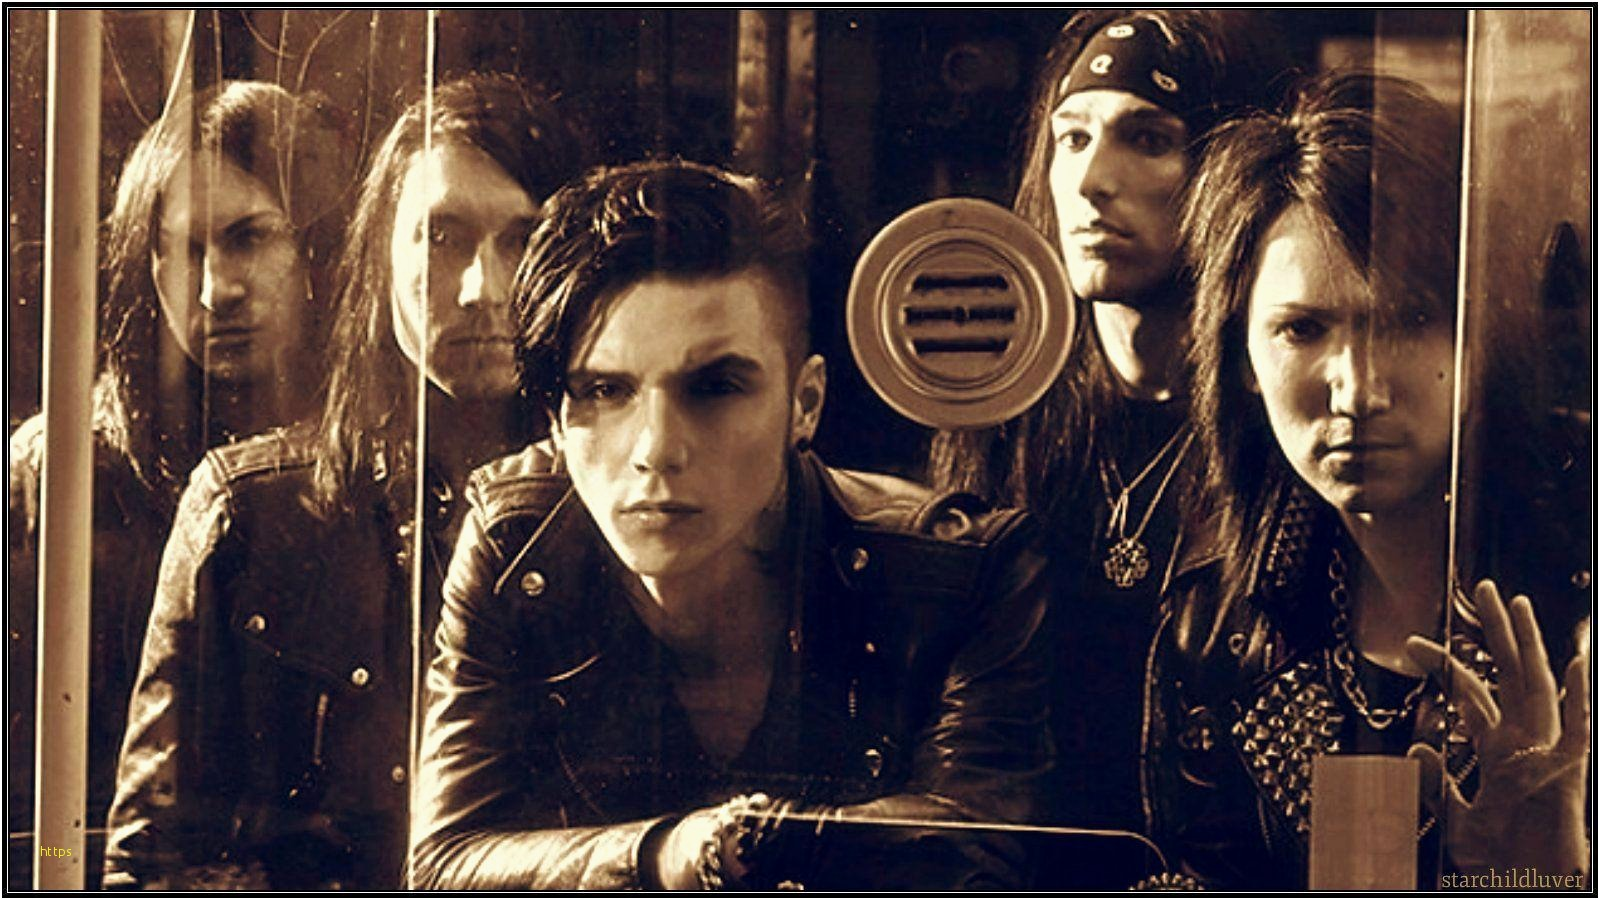 Black Veil Brides Wallpaper Awesome Black Veil Brides